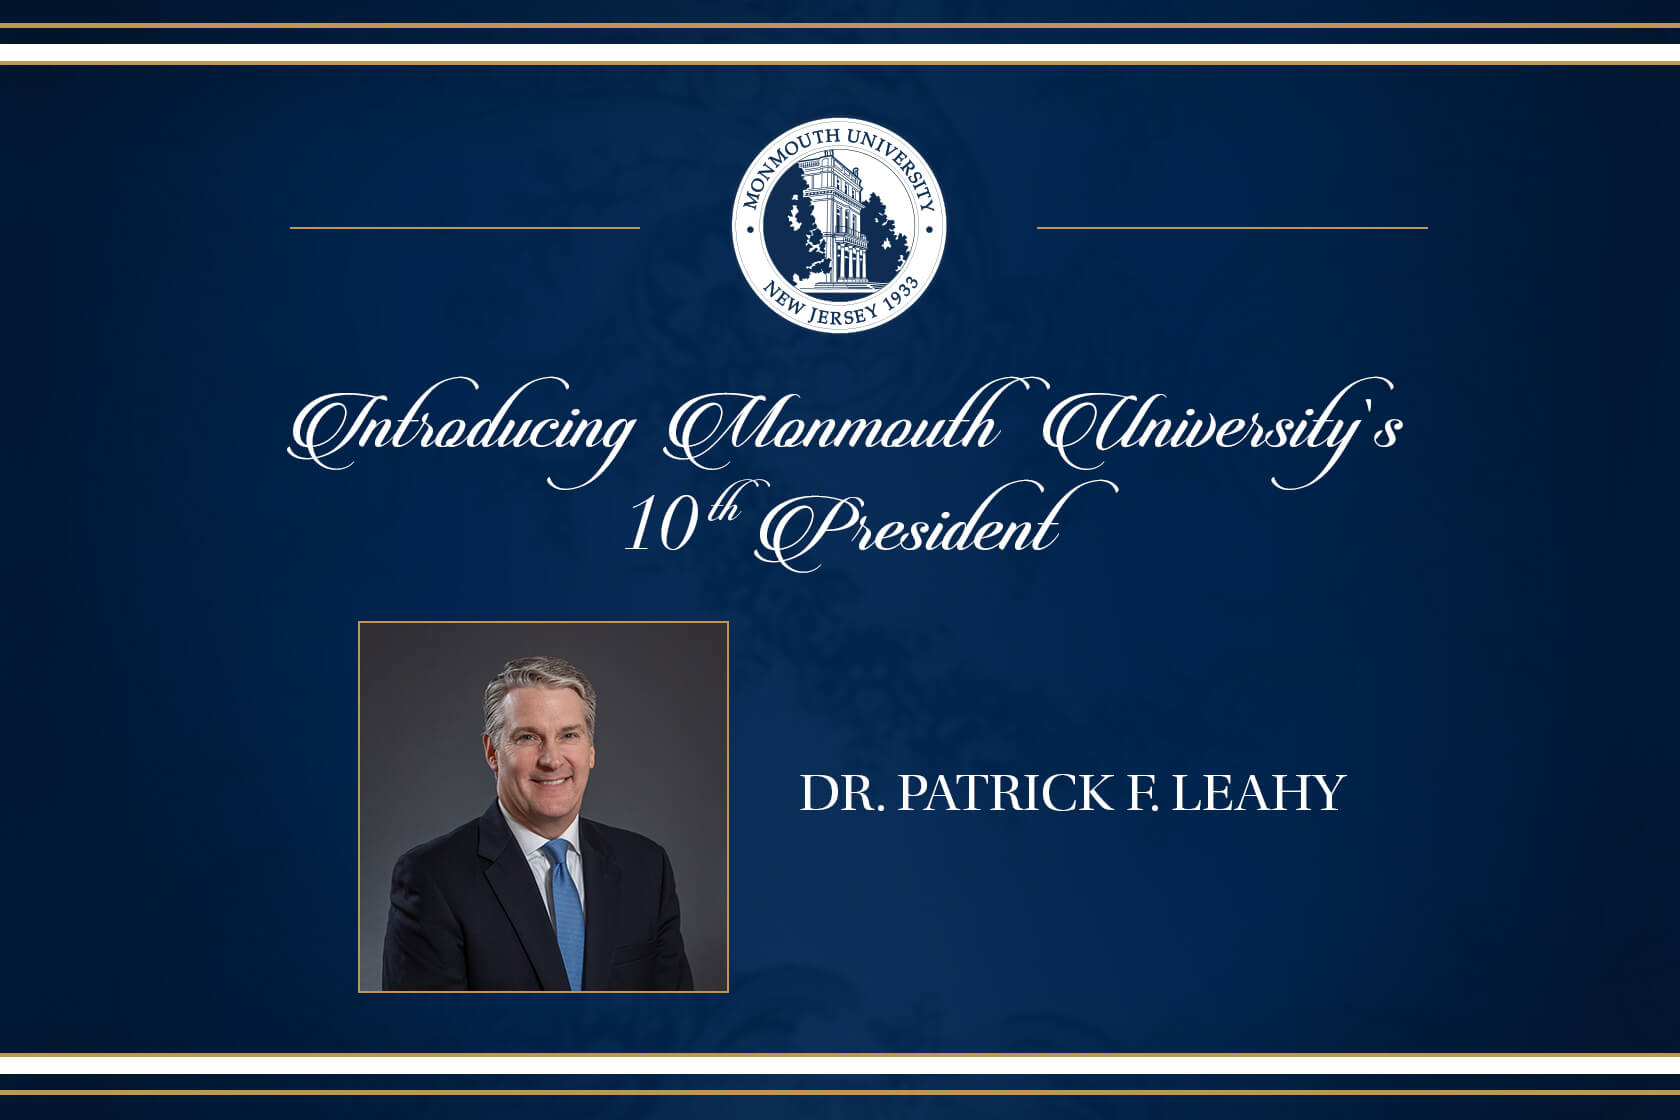 Introducing Monmouth University's 10 President, Dr Patrick Leahy